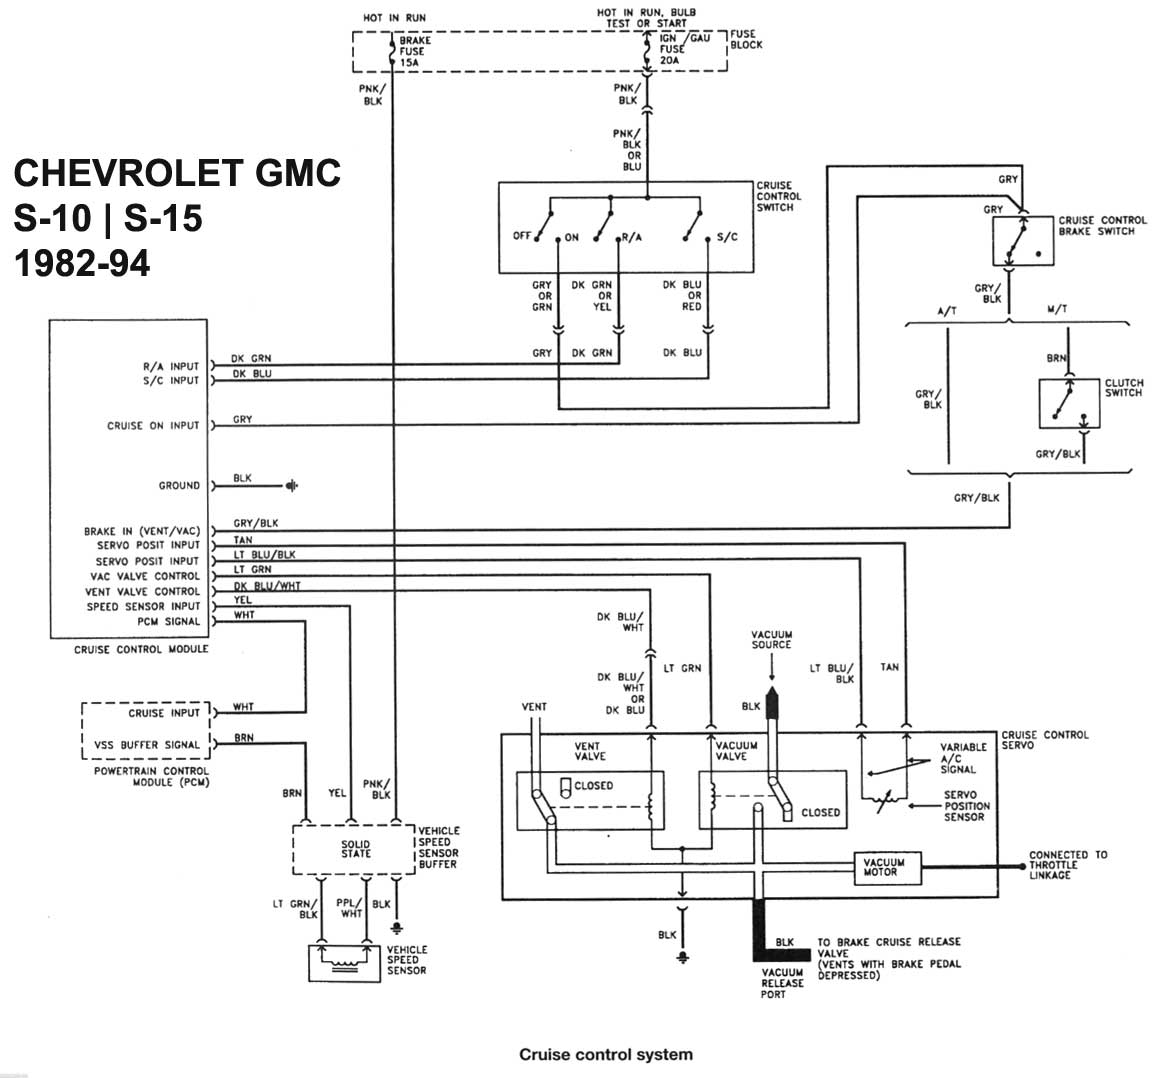 2008 gmc yukon wire diagram 02 gmc yukon wire diagrams #10